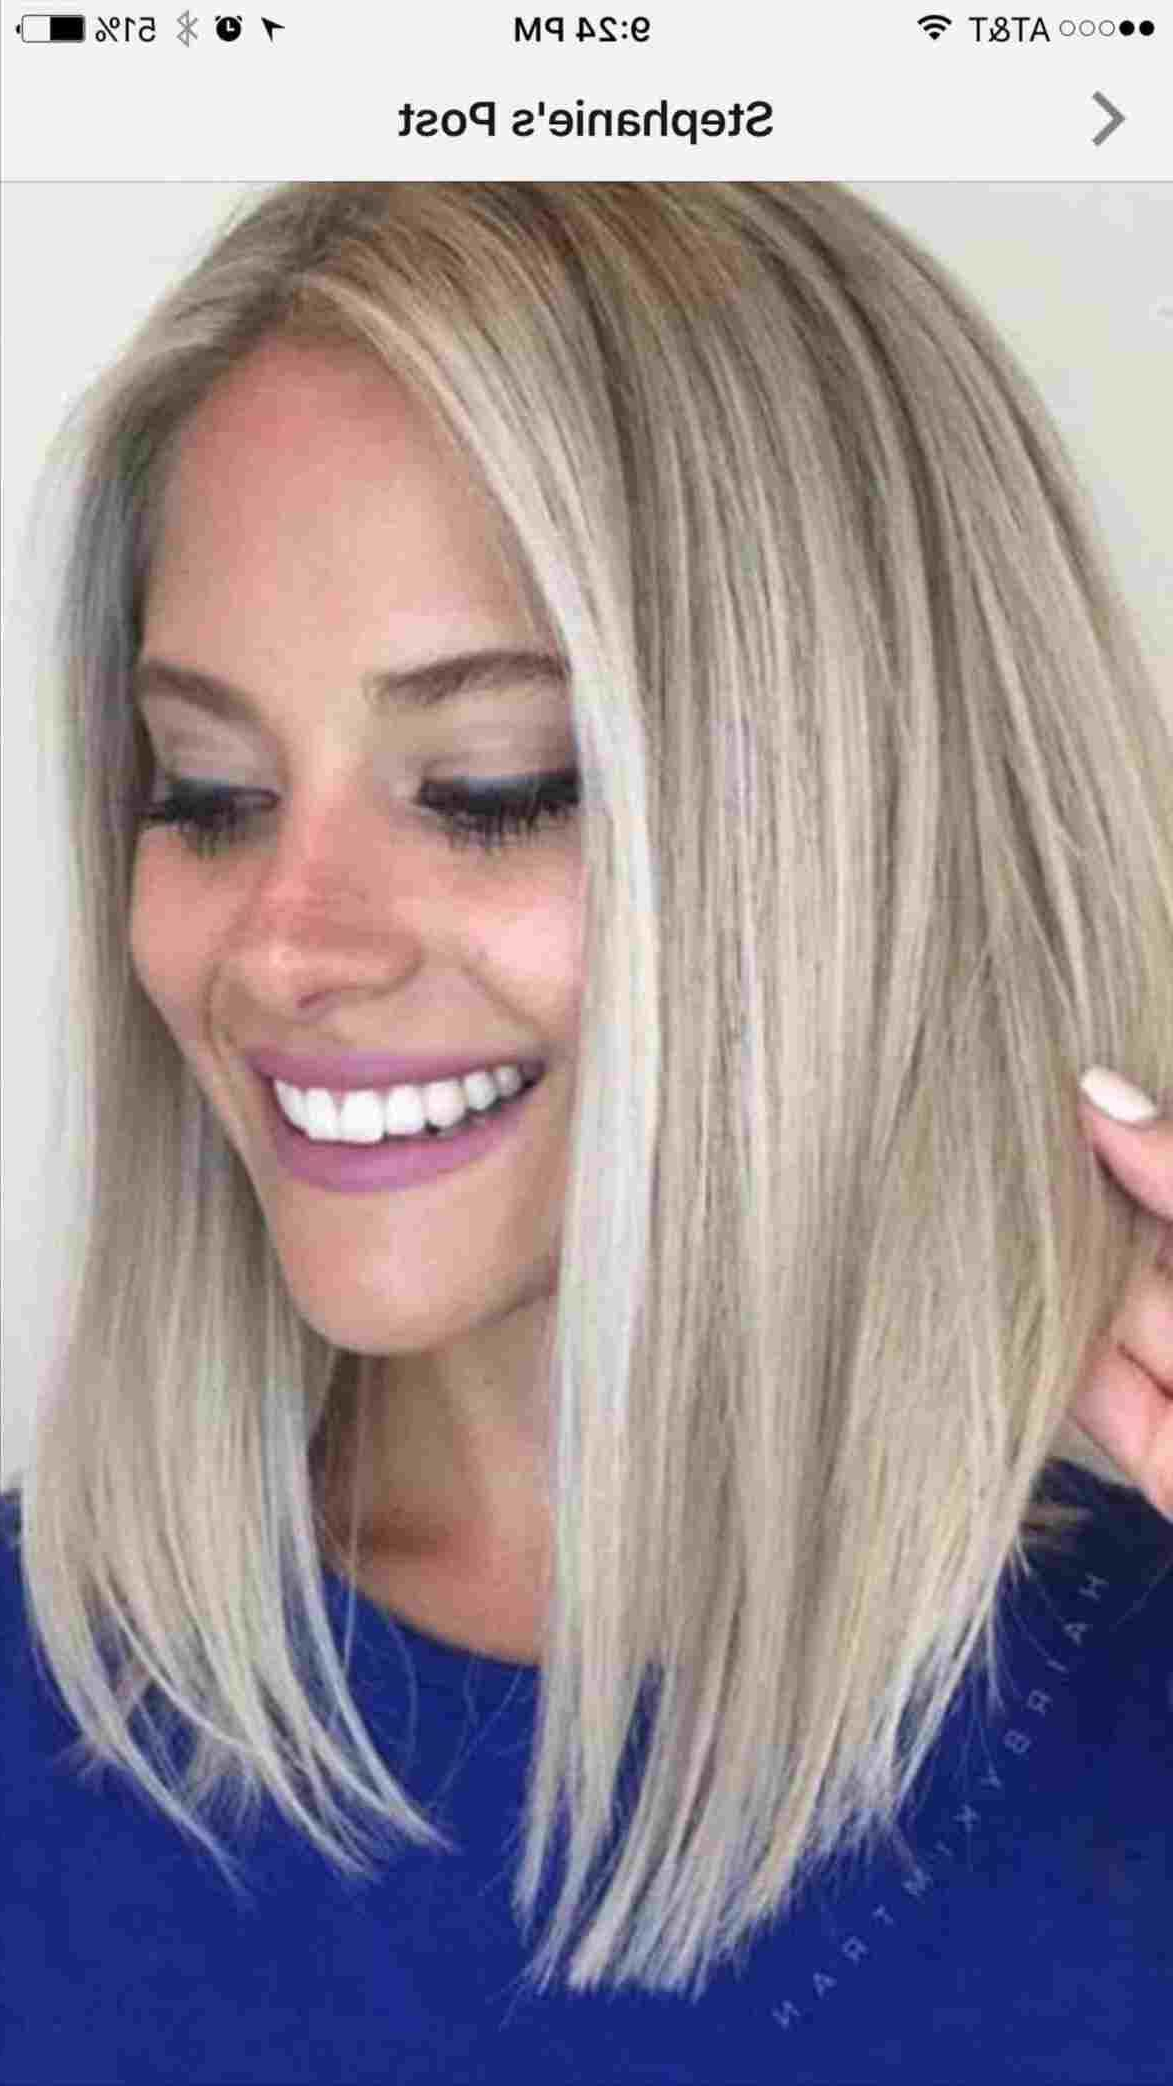 Image Result For Lob Haircut For Round Faces In 2019 With Long Bob Hairstyles For Round Face Types (View 2 of 20)